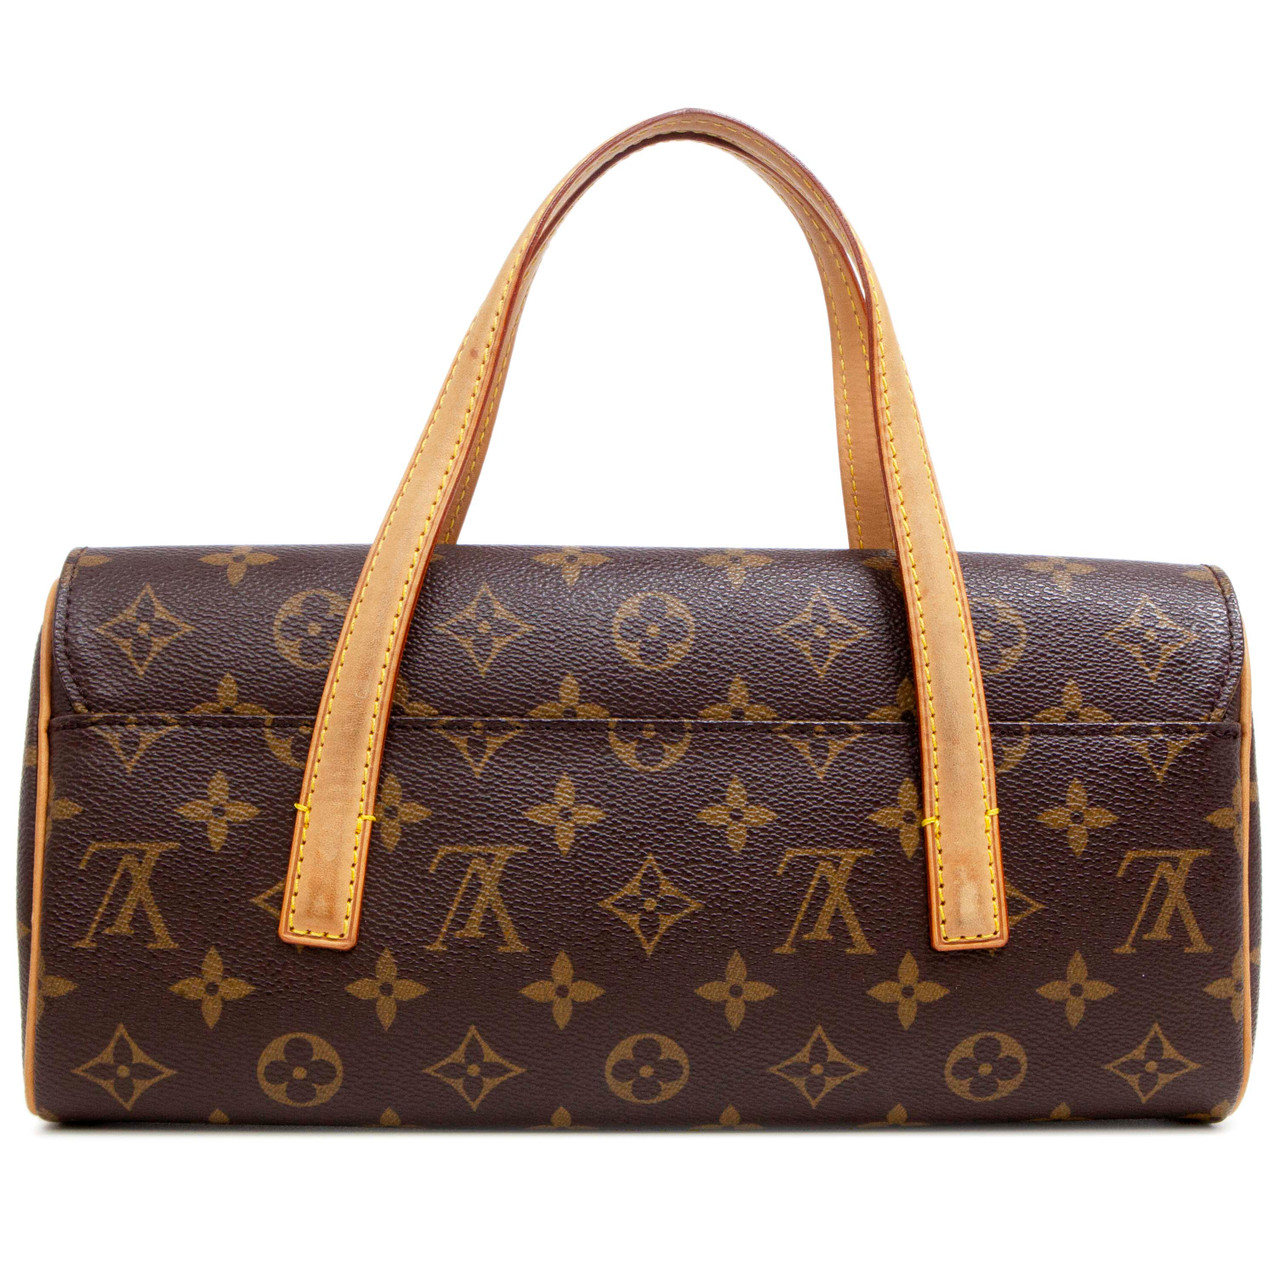 6a7cc39e5340 Louis Vuitton Monogram Sonatine Bag - modaselle